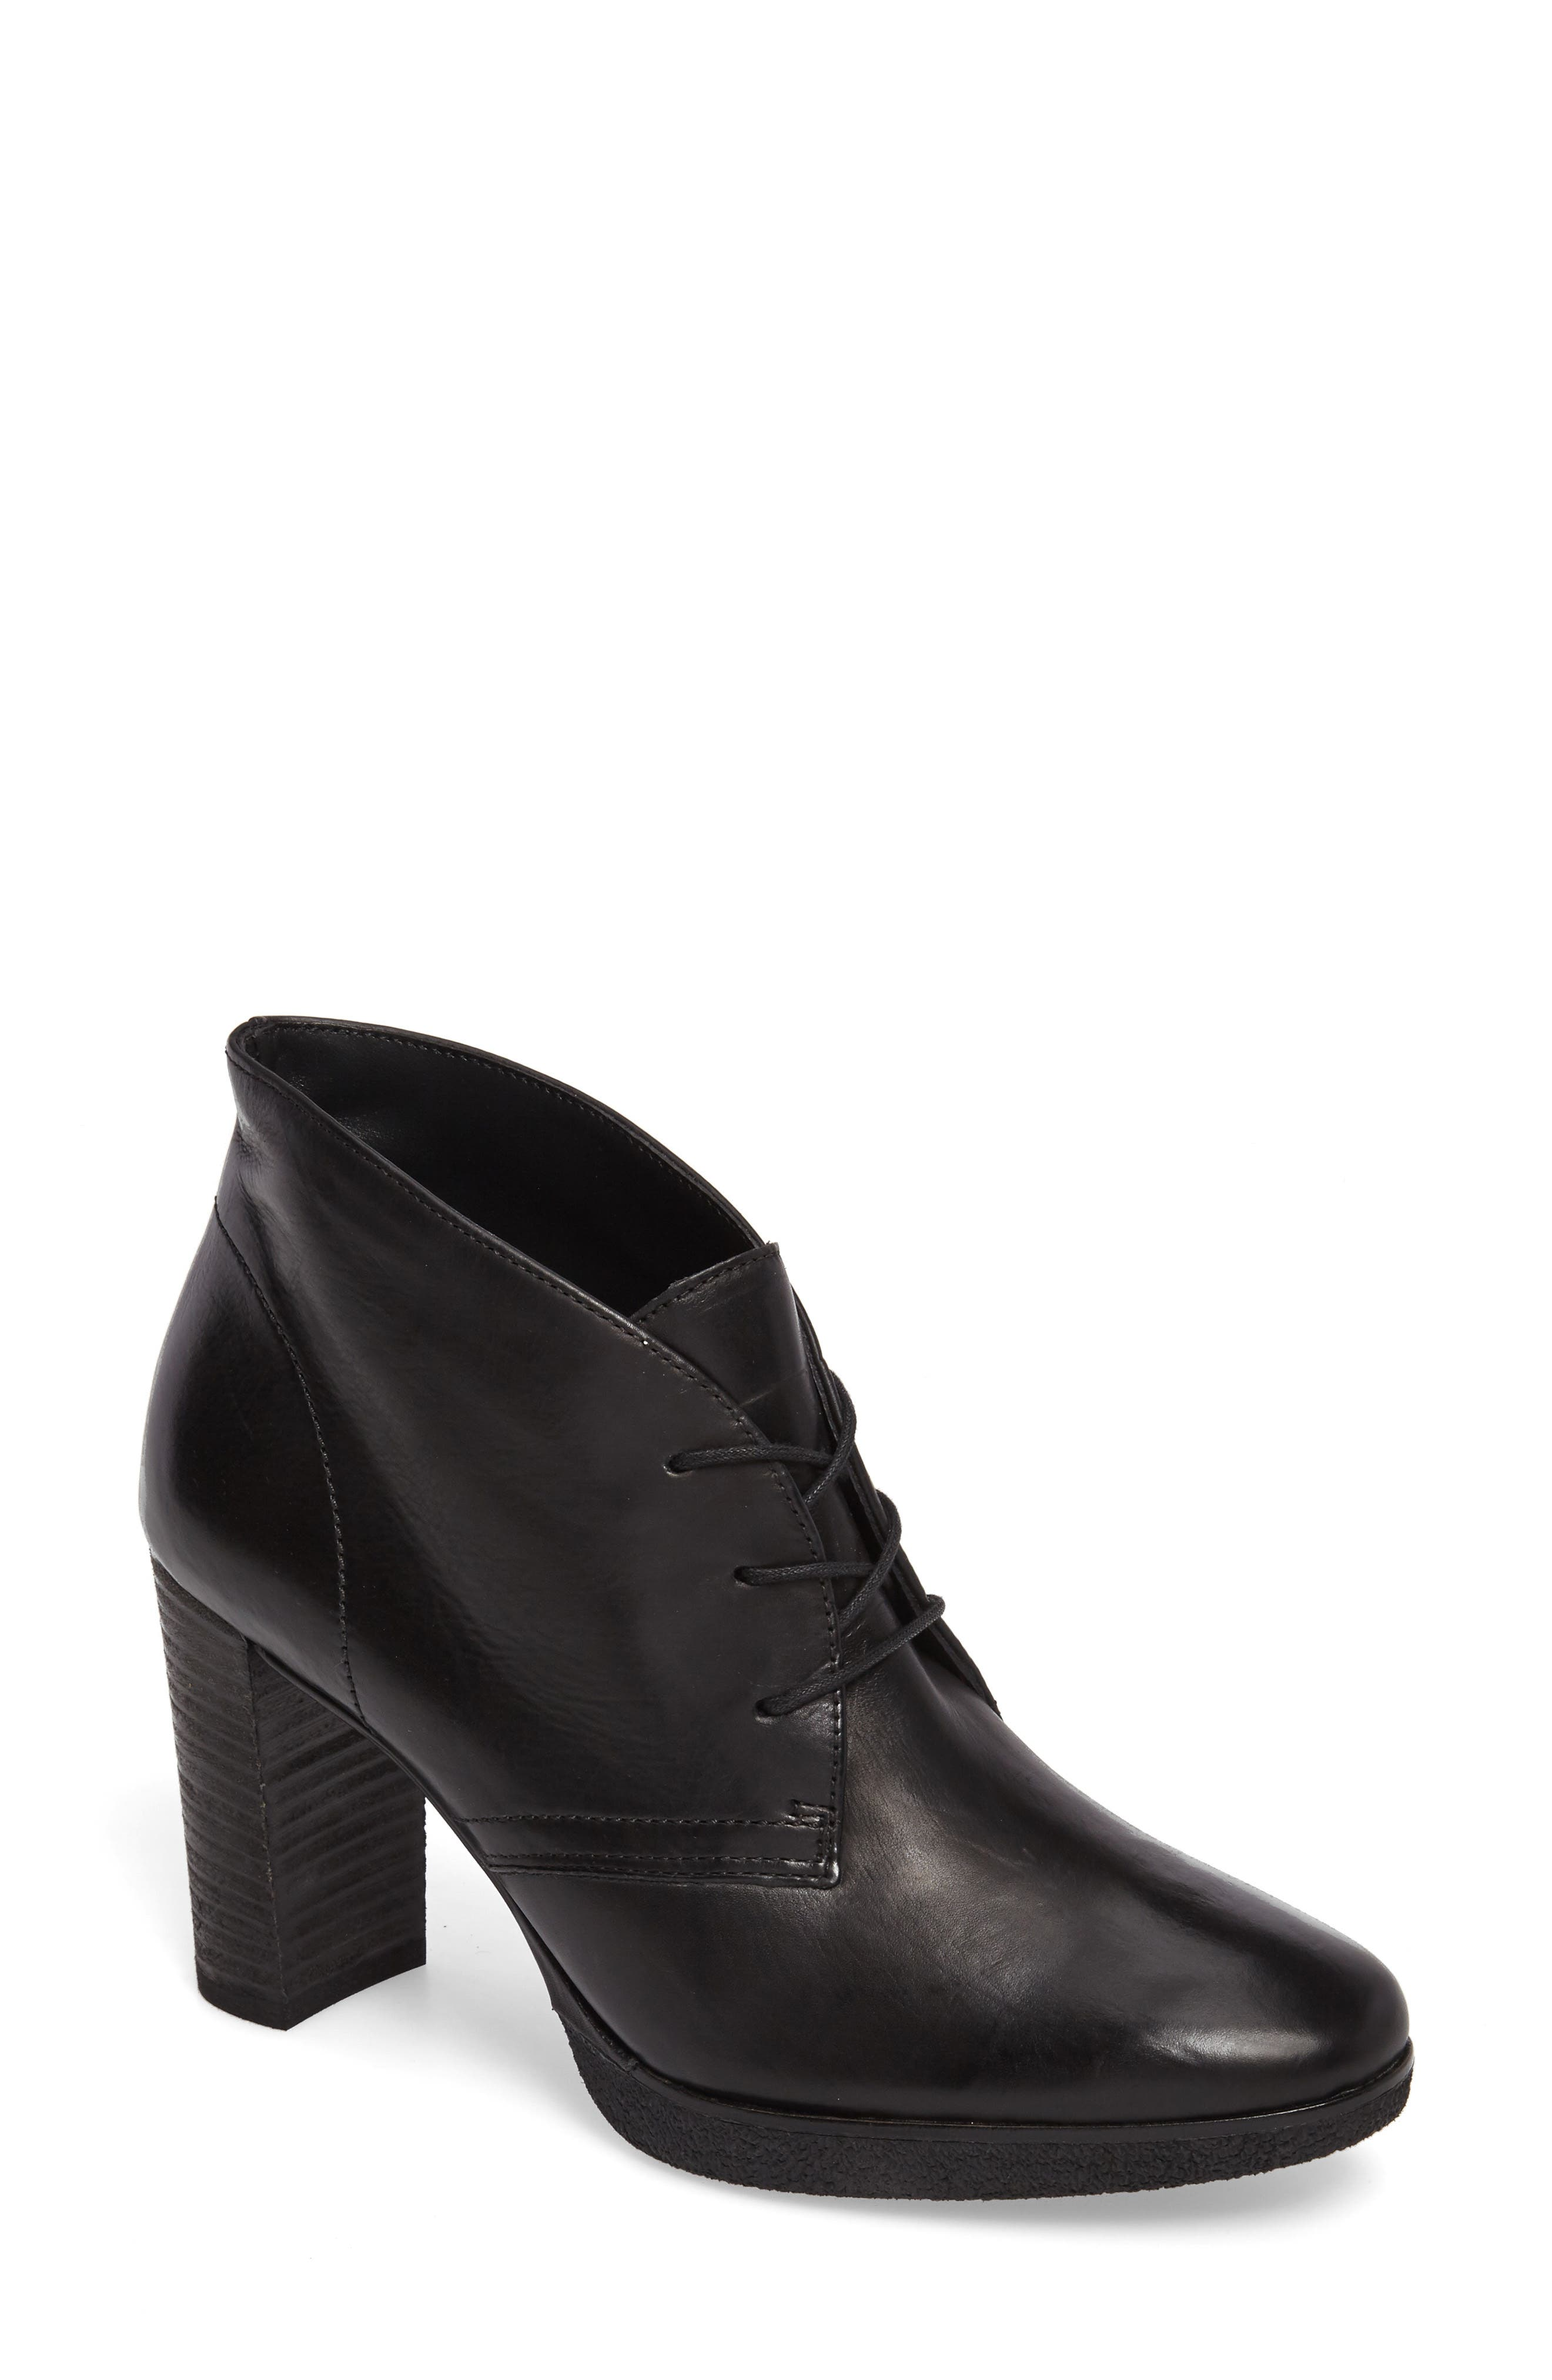 Ophelia Lace-Up Bootie,                         Main,                         color, Black Leather